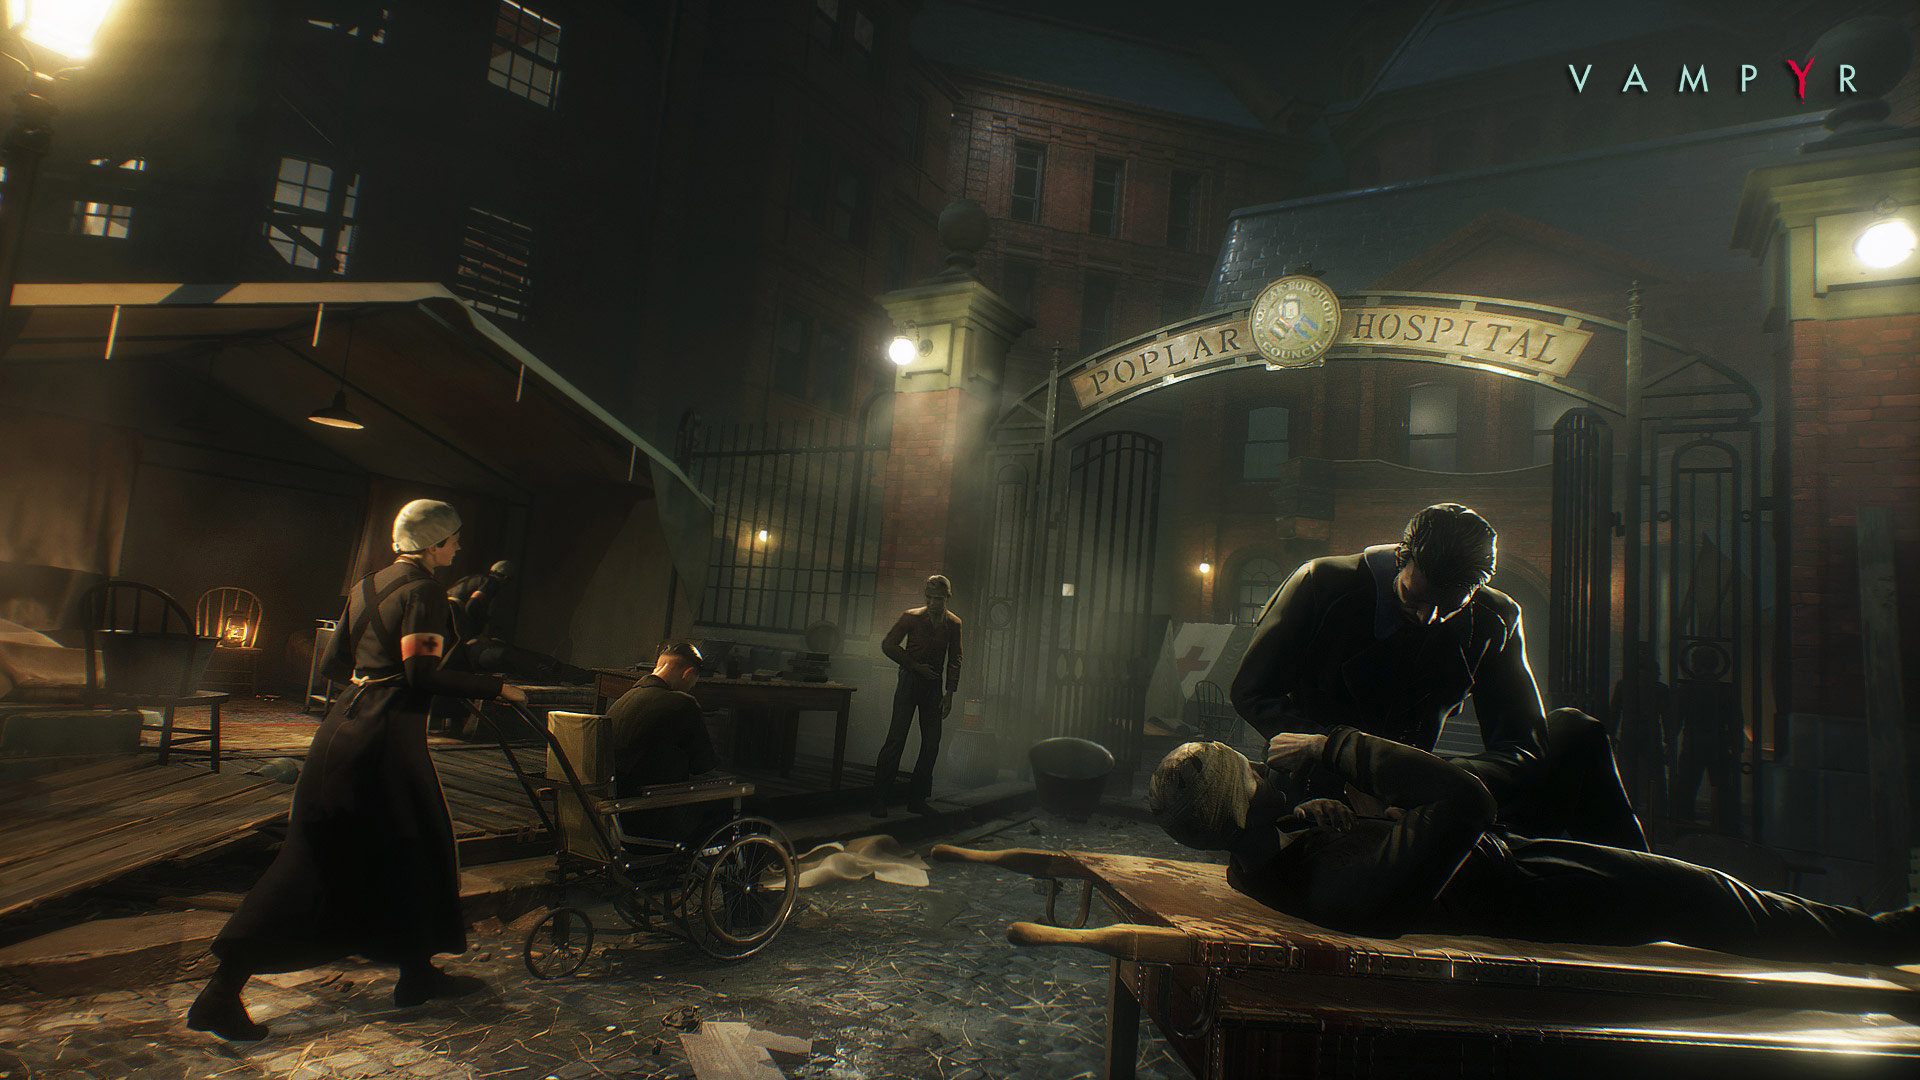 Vampyr Playstation 4 Screenshot